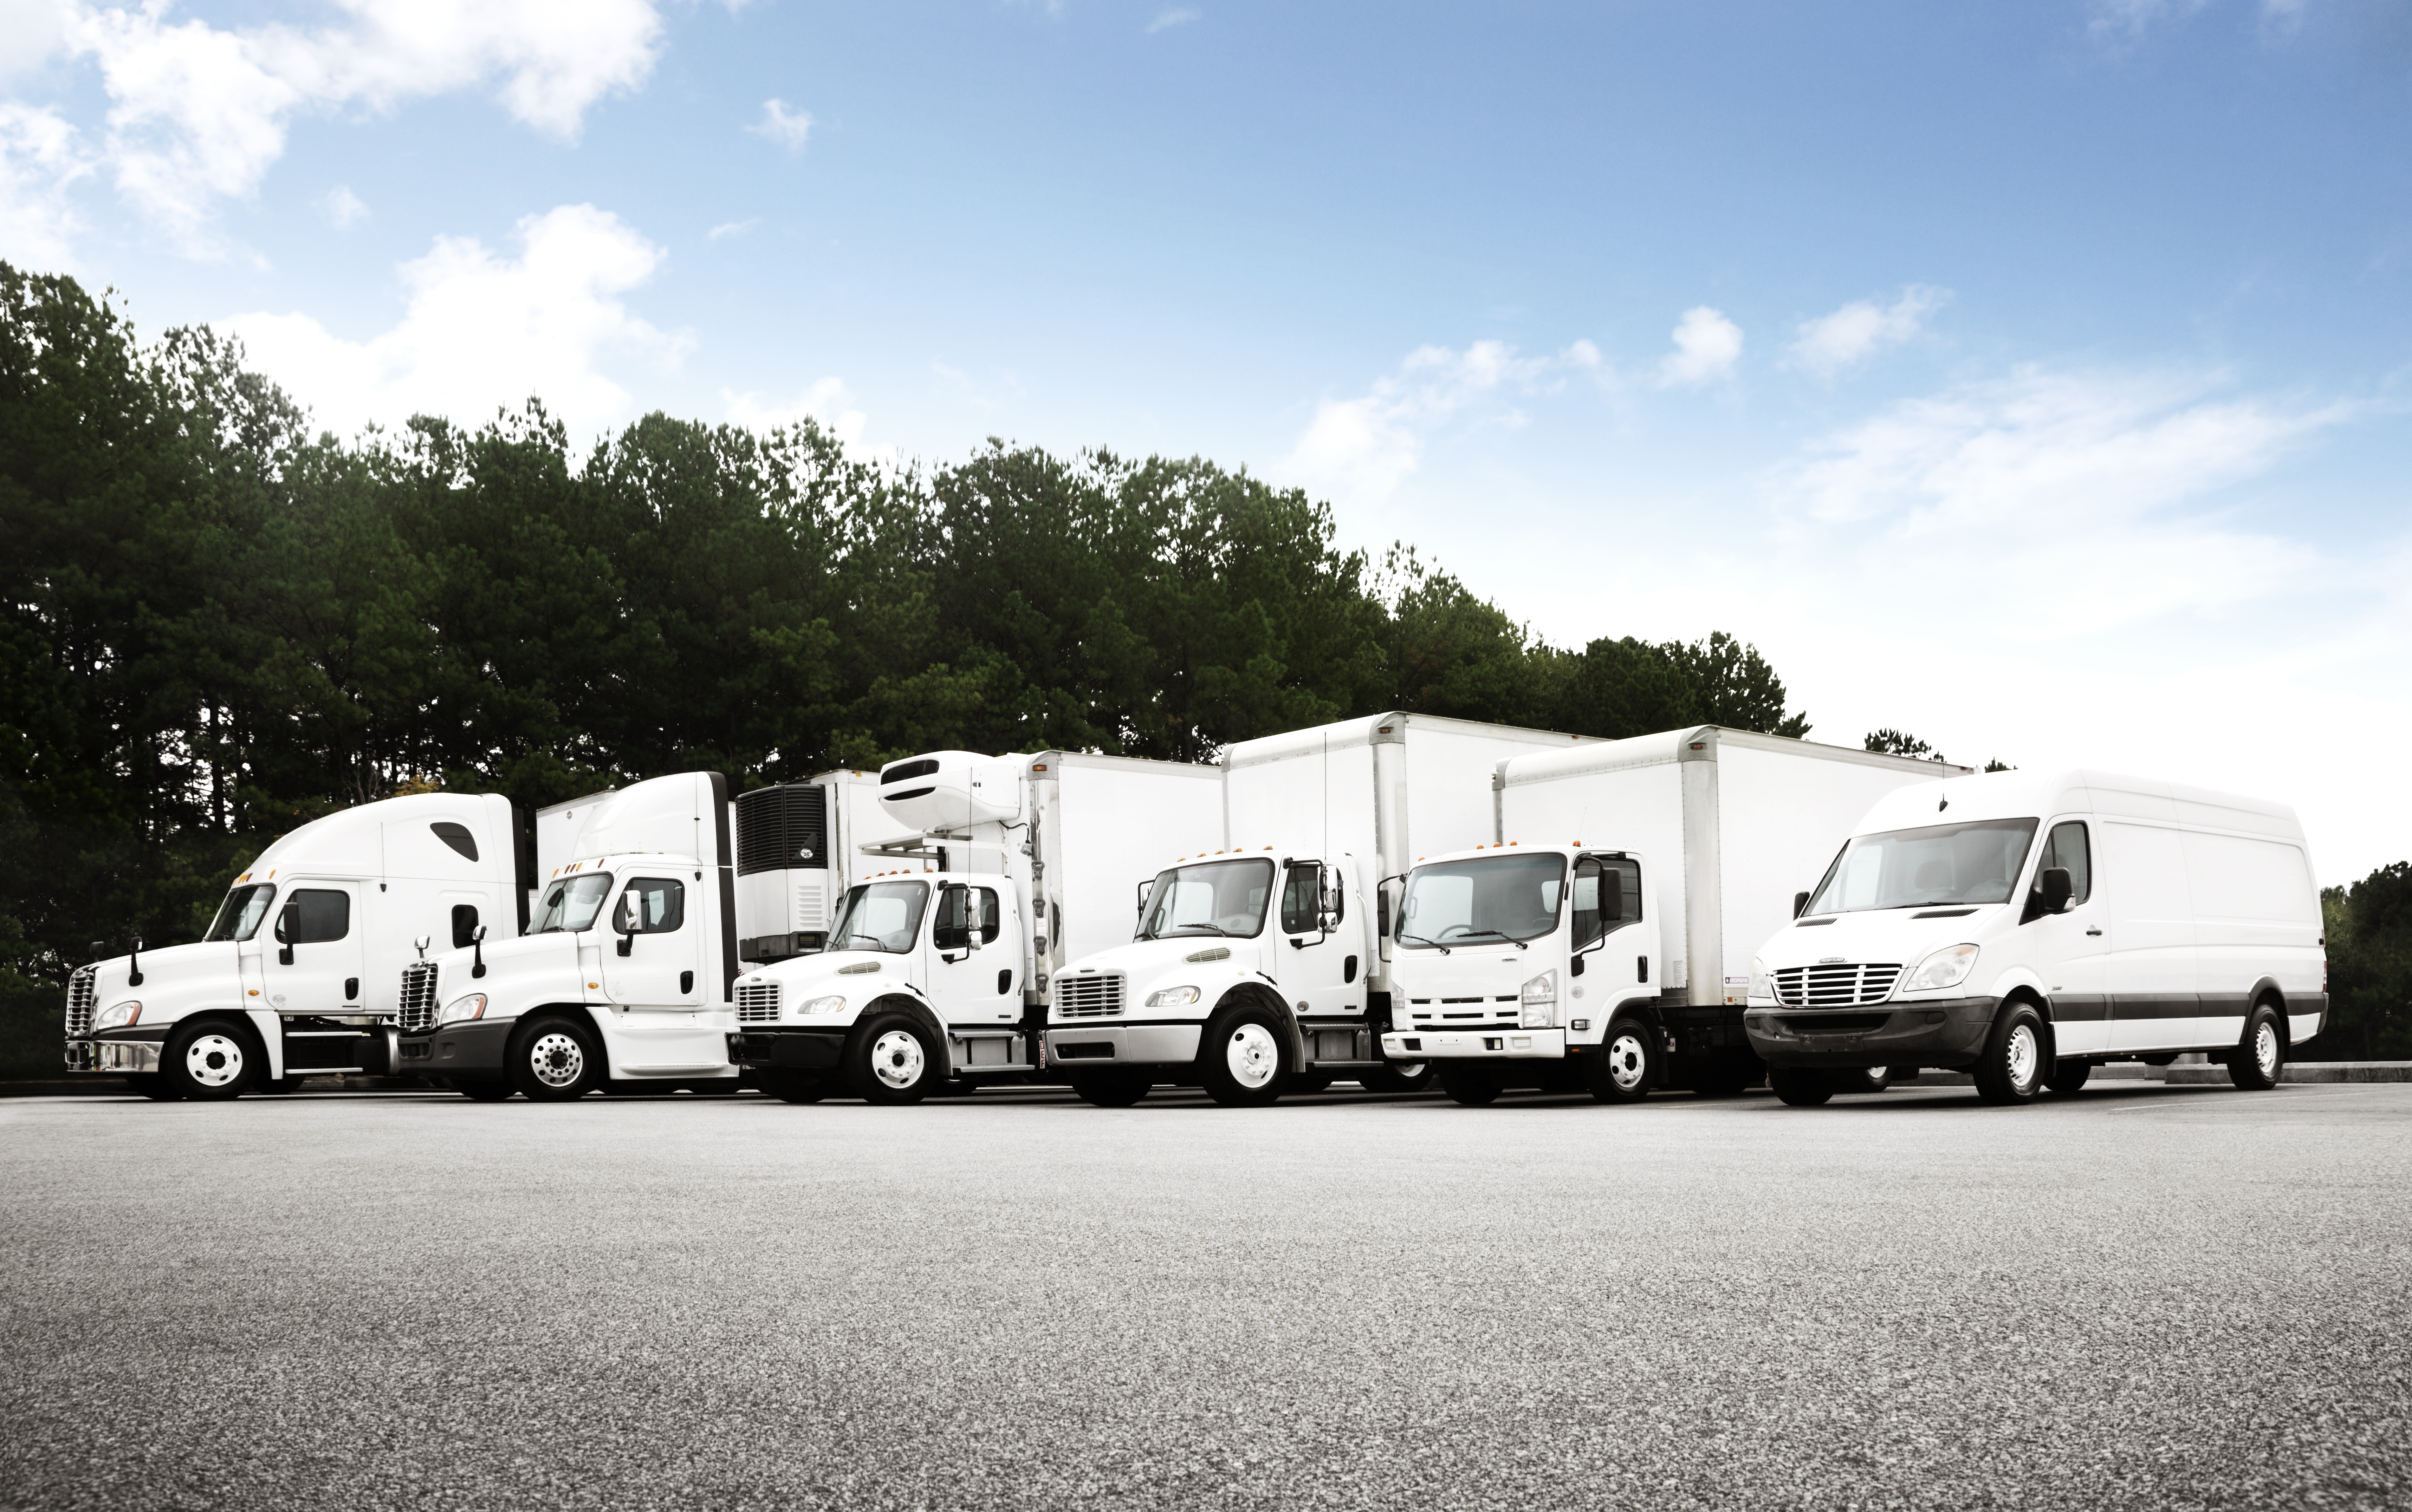 Ryder offers customers pre-owned vehicle inventory in three categories: Ryder Certified, Ryder Verified, and Ryder Reclassified for commercial vehicles, consisting of day cabs, sleepers, reefers, box trucks, sprinters, cargo vans, and trailers. (Photo: Business Wire)